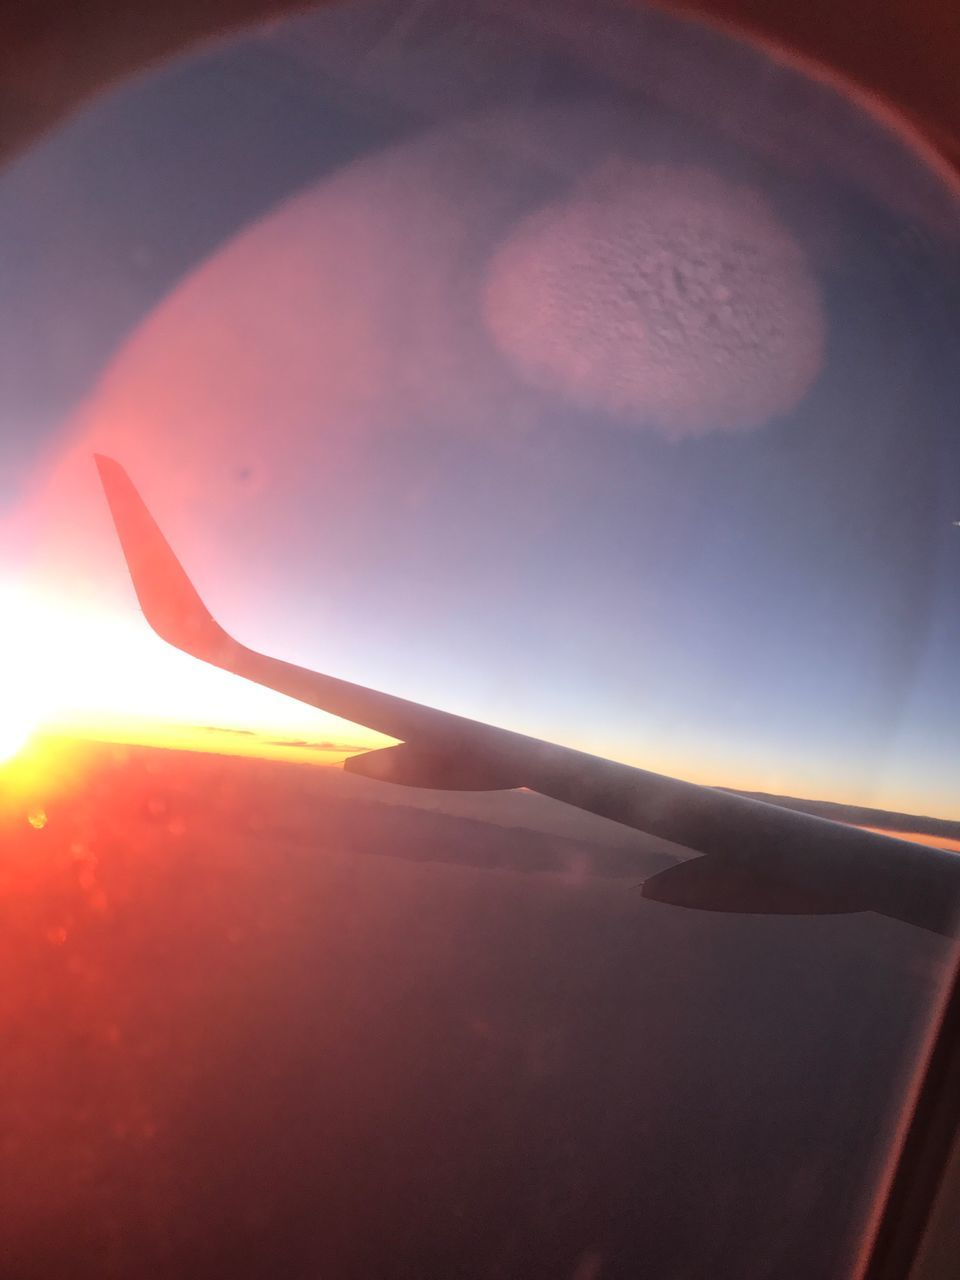 airplane, transportation, journey, air vehicle, sky, mode of transport, no people, airplane wing, flying, sun, beauty in nature, travel, nature, sunset, scenics, aerial view, aircraft wing, outdoors, day, close-up